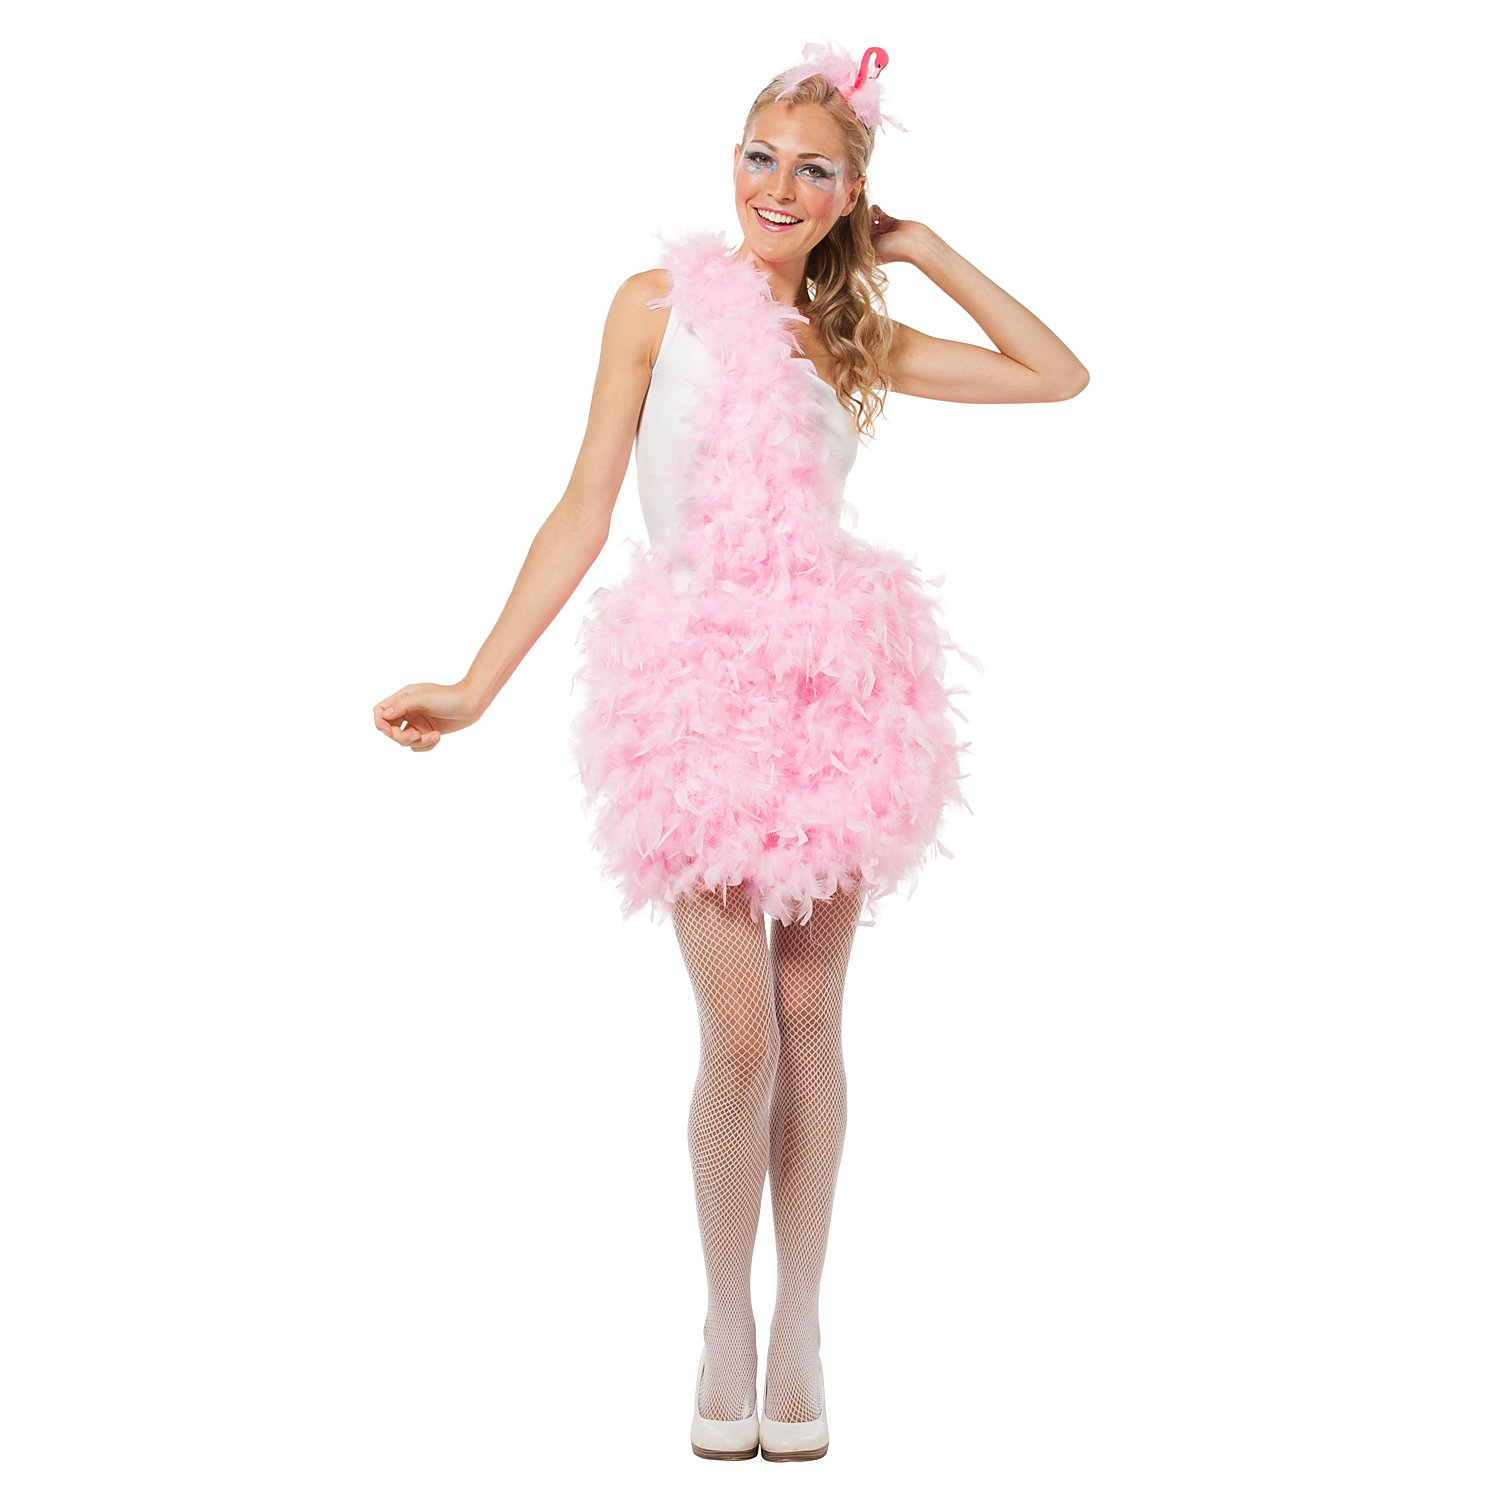 Buttinette Kostum Flamingo Fur Damen Online Kaufen Buttinette